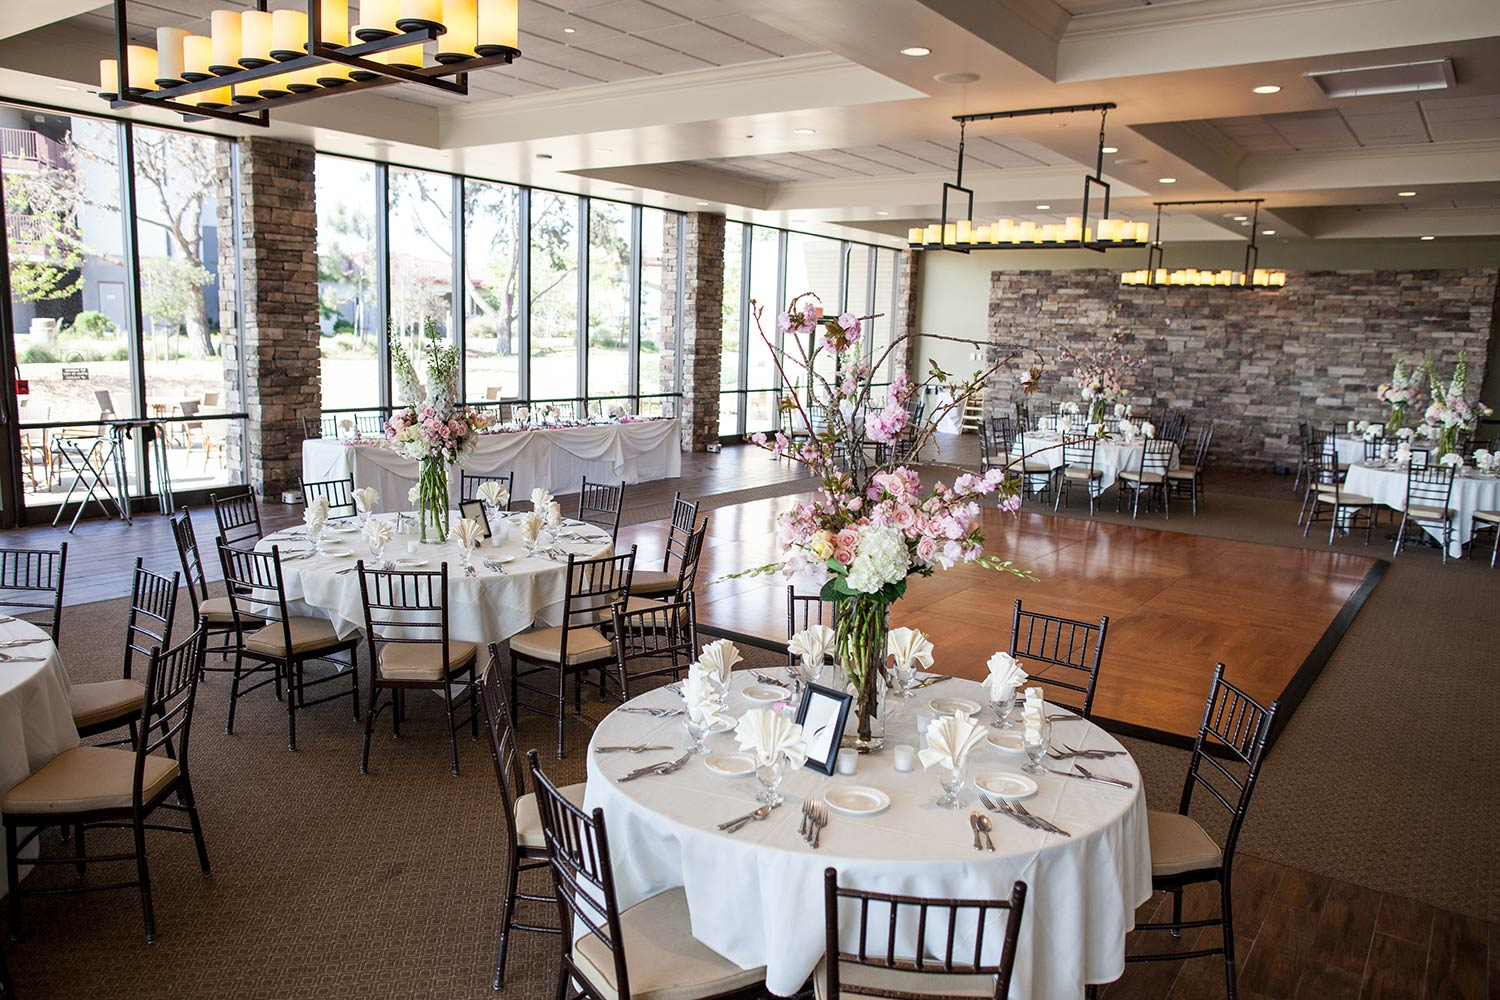 Seaview Room Wedding table set up with flowers